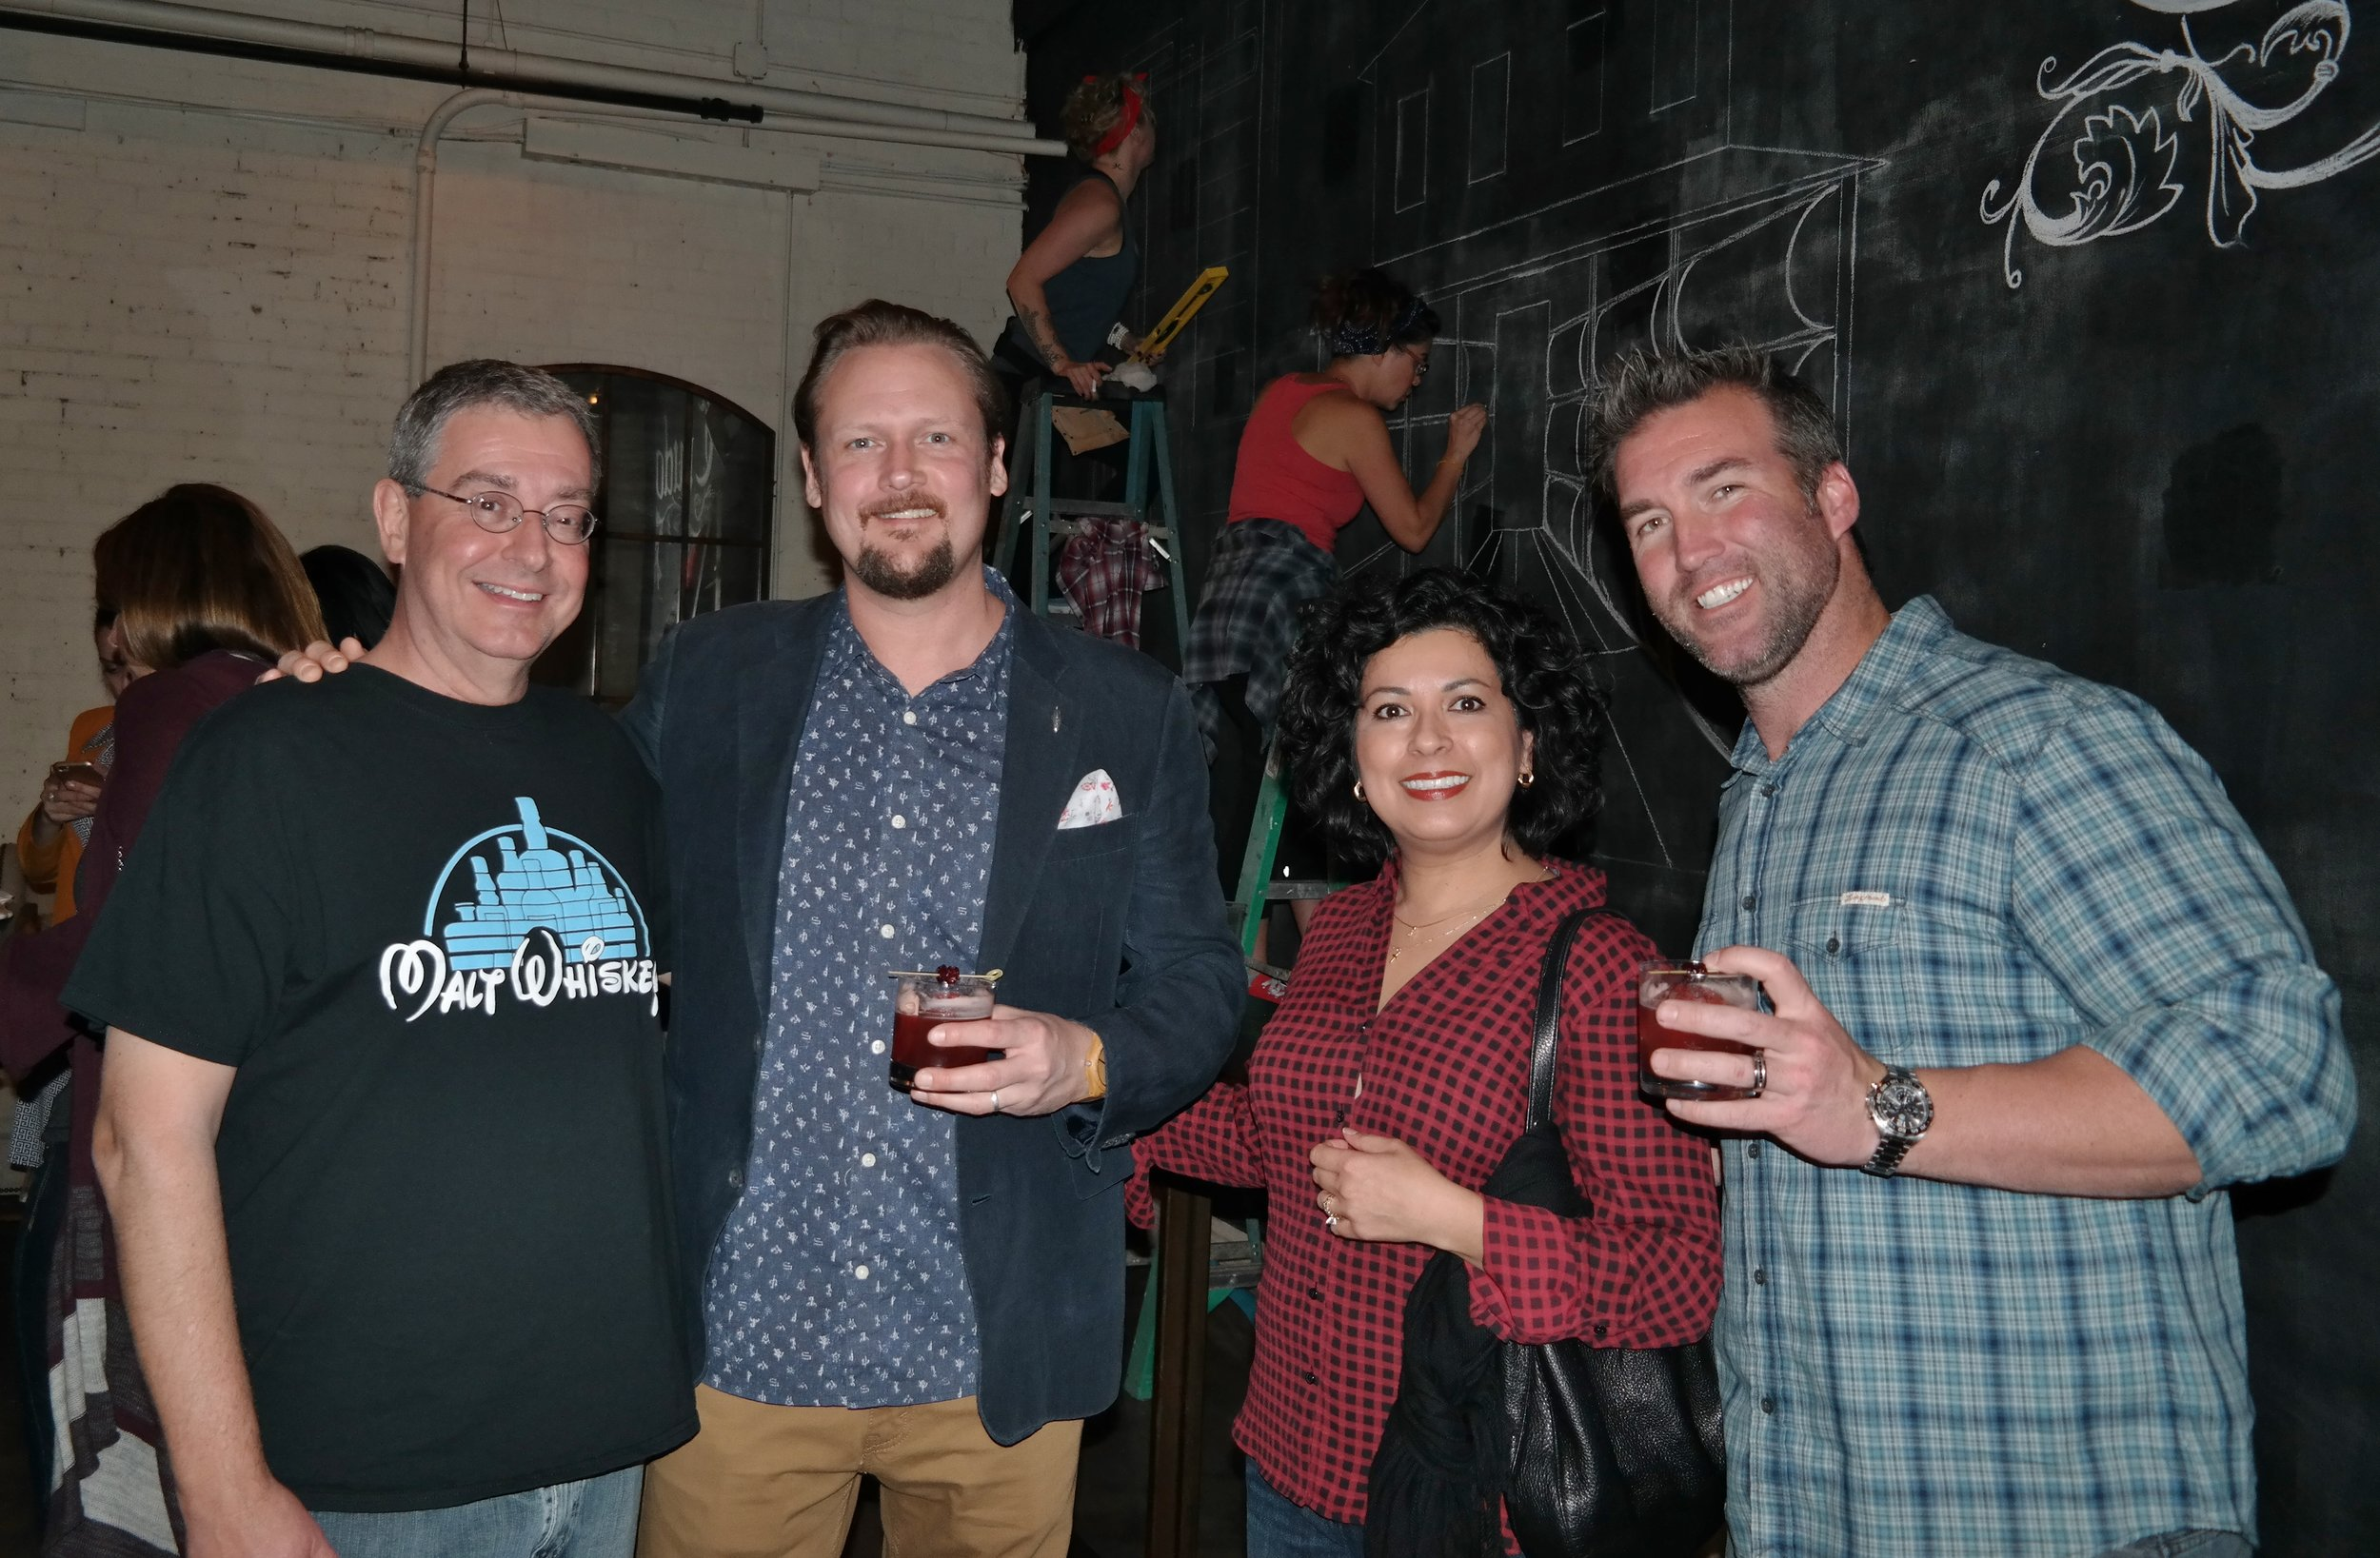 Left to right: Bill Buitenhuys (AZ Bitters Lab), Adam Harris (Beam Suntory Whiskey Ambassador) Lillian Buitenhuys (AZ Bitters Lab) and Anthony DeSantis (Arizona Beam Suntory Specialist)